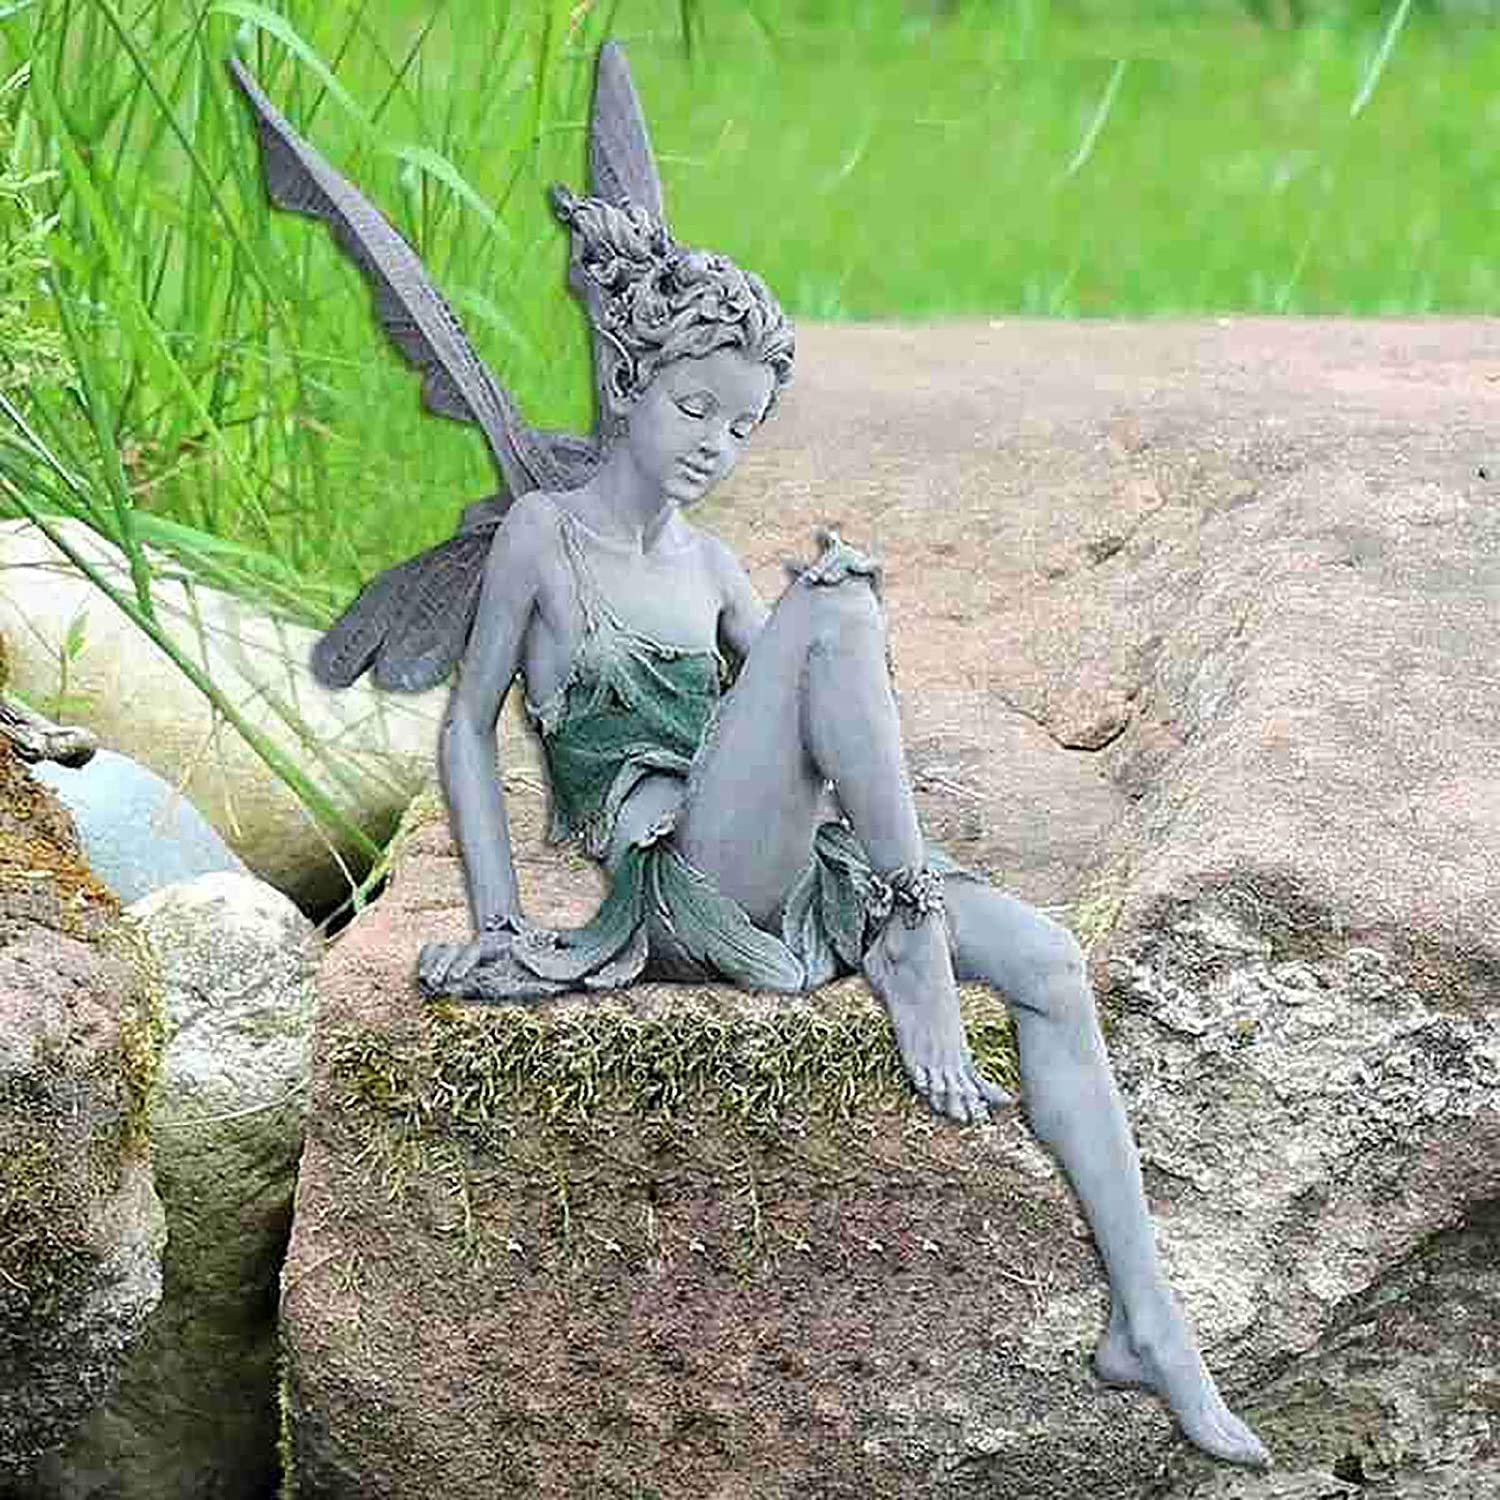 Nileco Sitting Fairy Garden Statues,Resin Flower Fairy Outdoor Statue Lifelike Garden Figures Sculptures,Angel Statues Ornaments for Lawn Pond Patio Courtyard Decor-White 18x8x15cm(7x3x6inch)